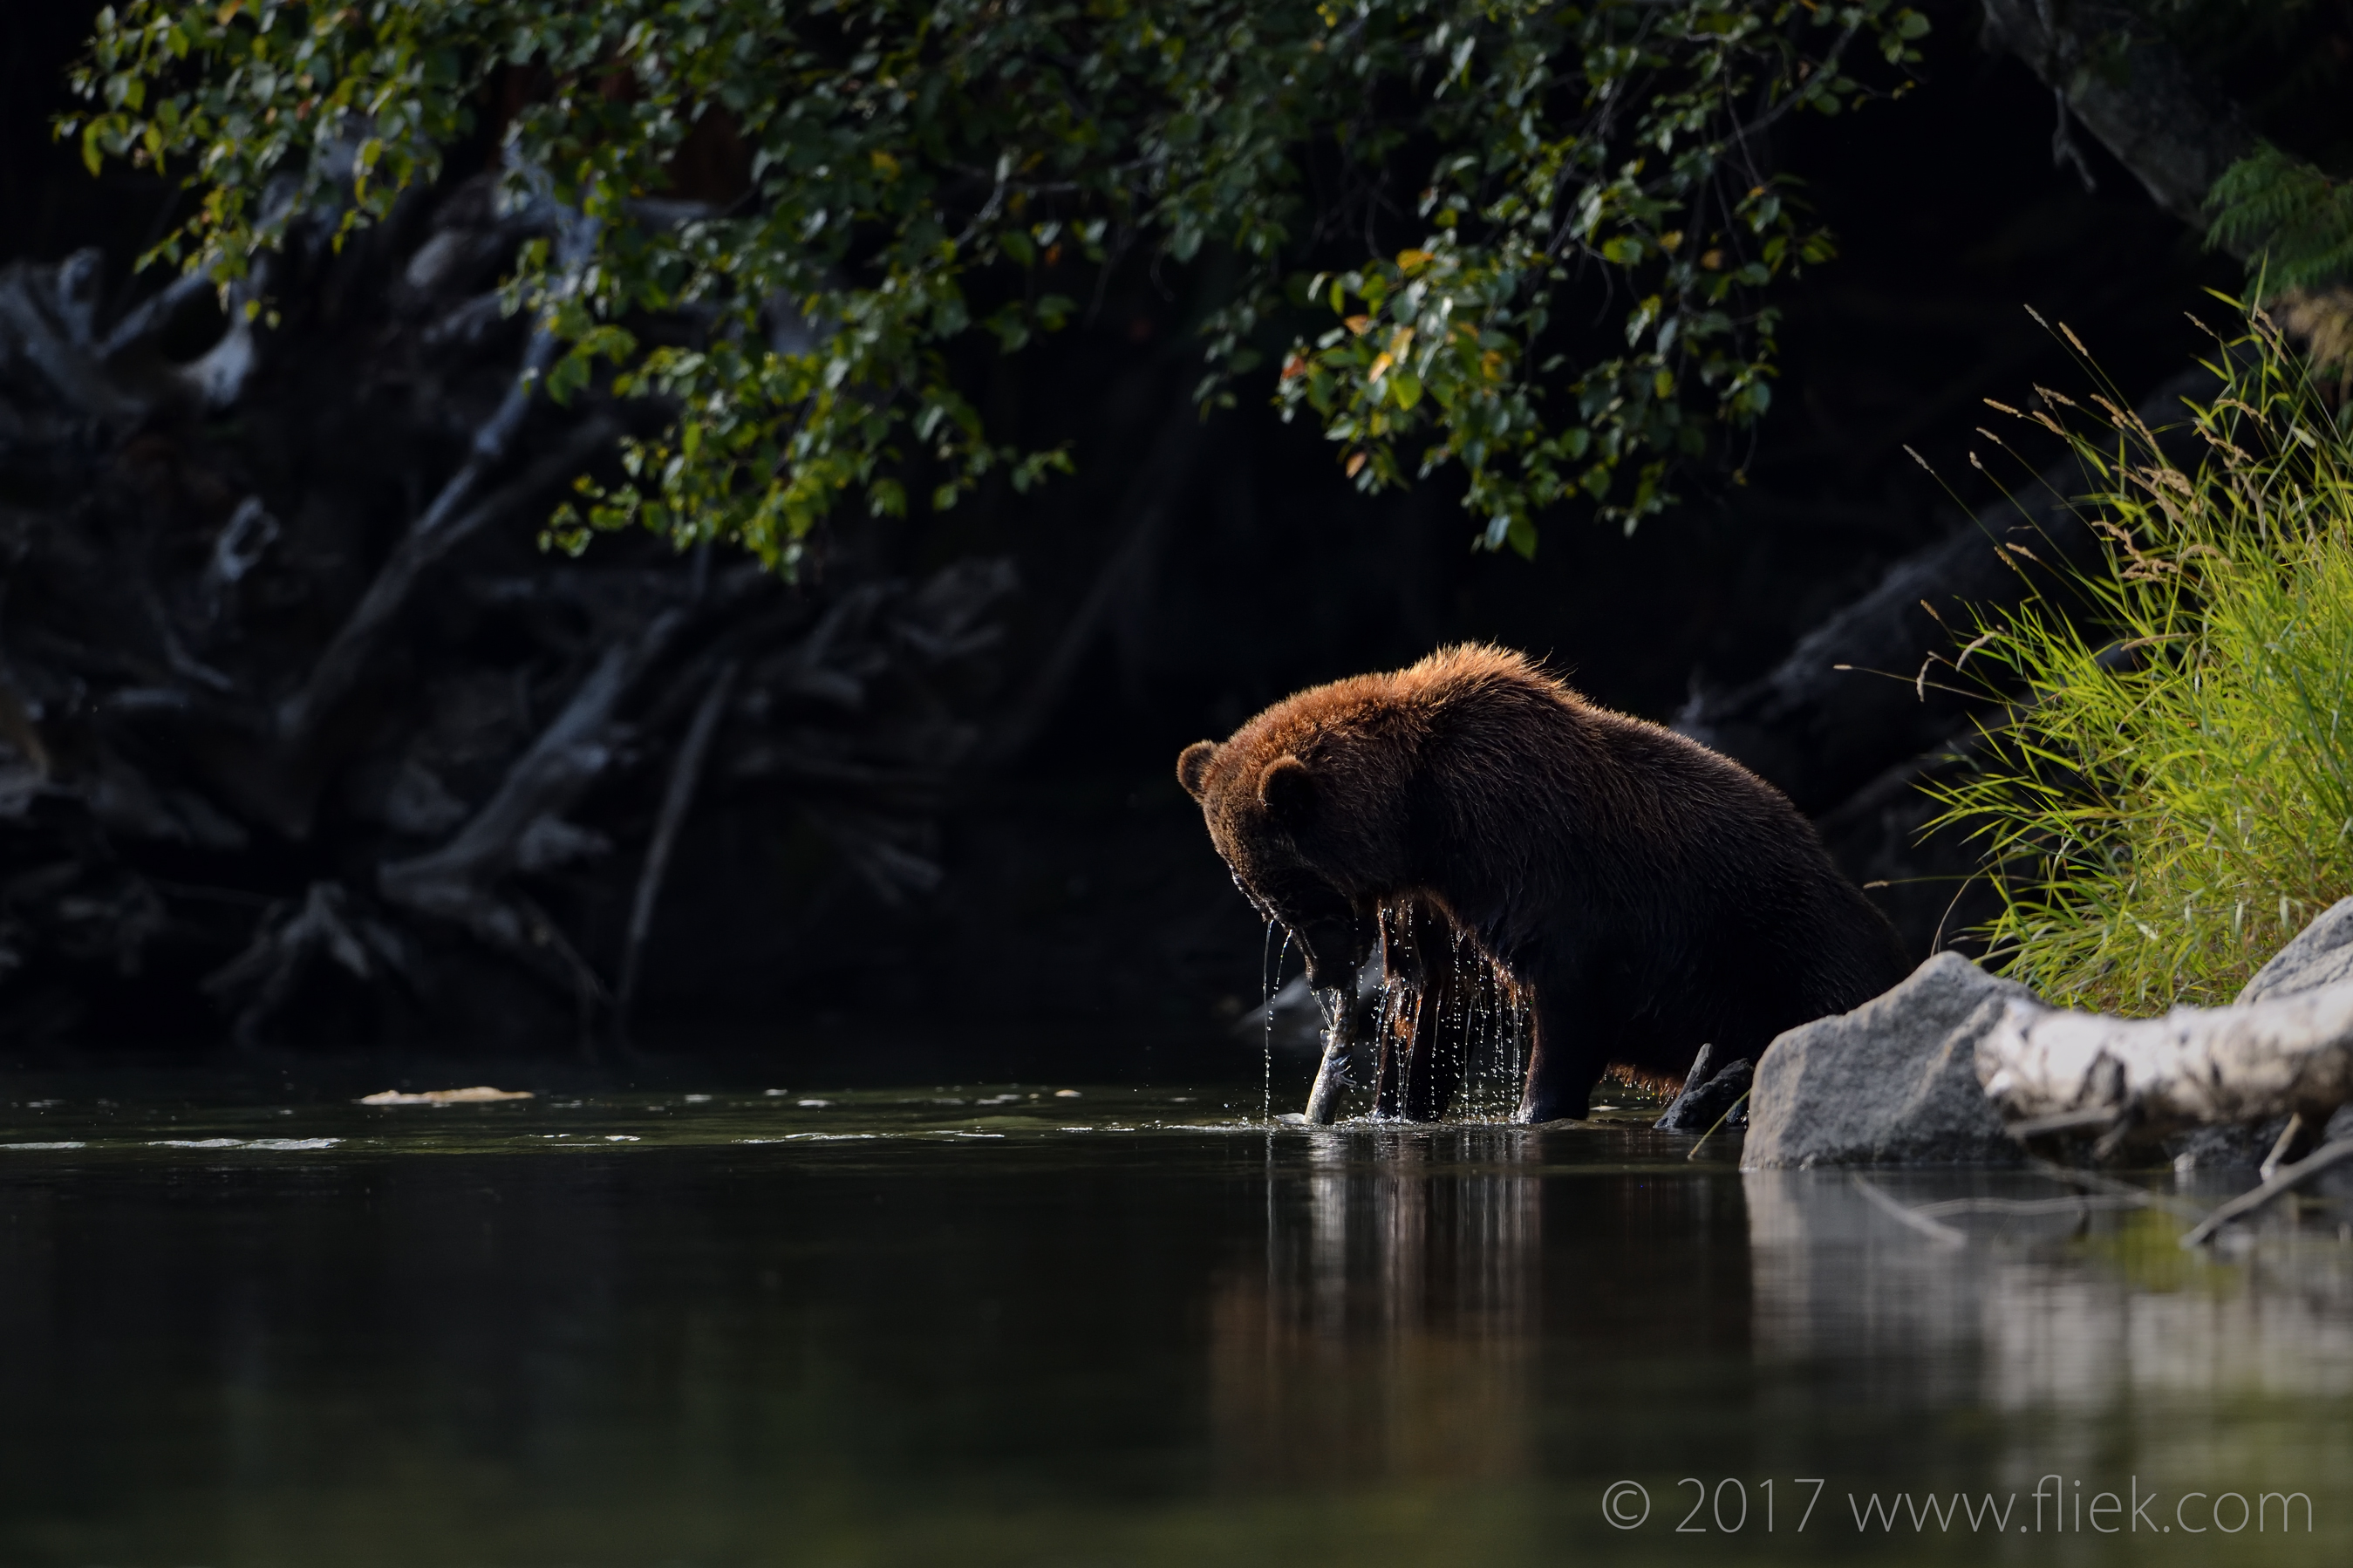 Nikon D850 review part 1: first impressions from the Great Bear Rain Forest